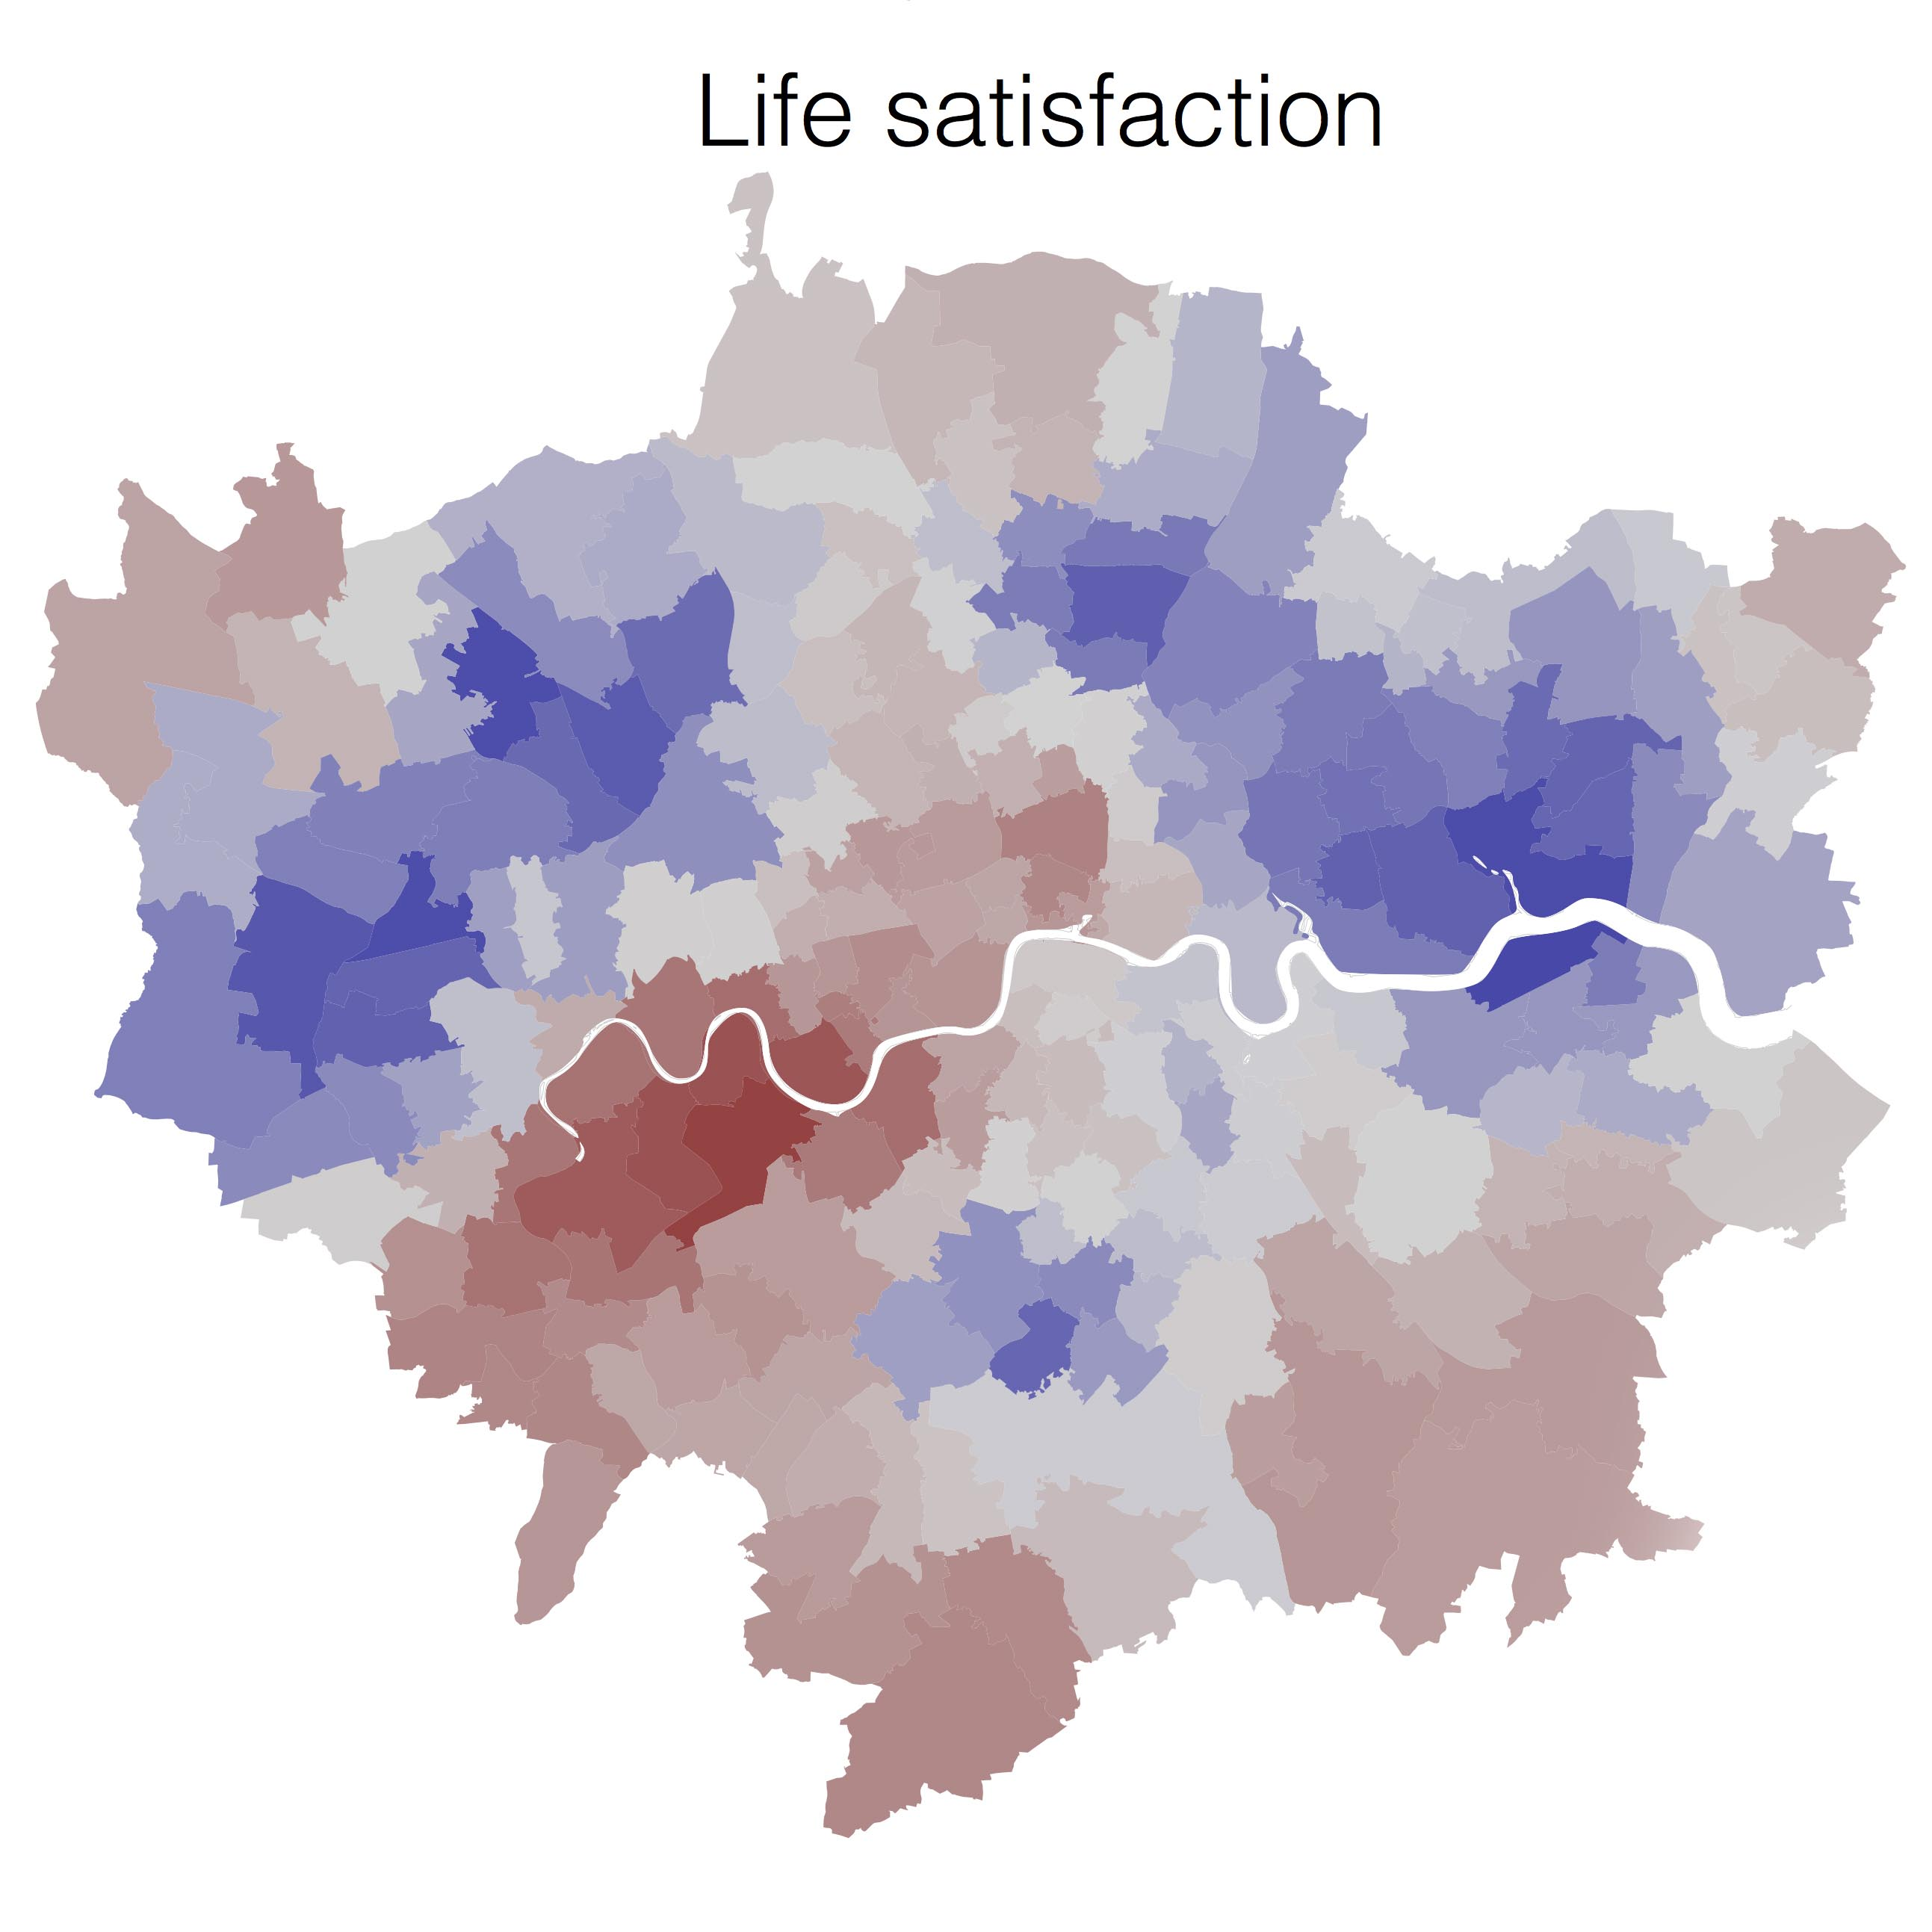 life satisfaction While the factors that bring about contentment or a sense of well-being may be considered subjective, there are certain key elements that have been known to impact life satisfaction.